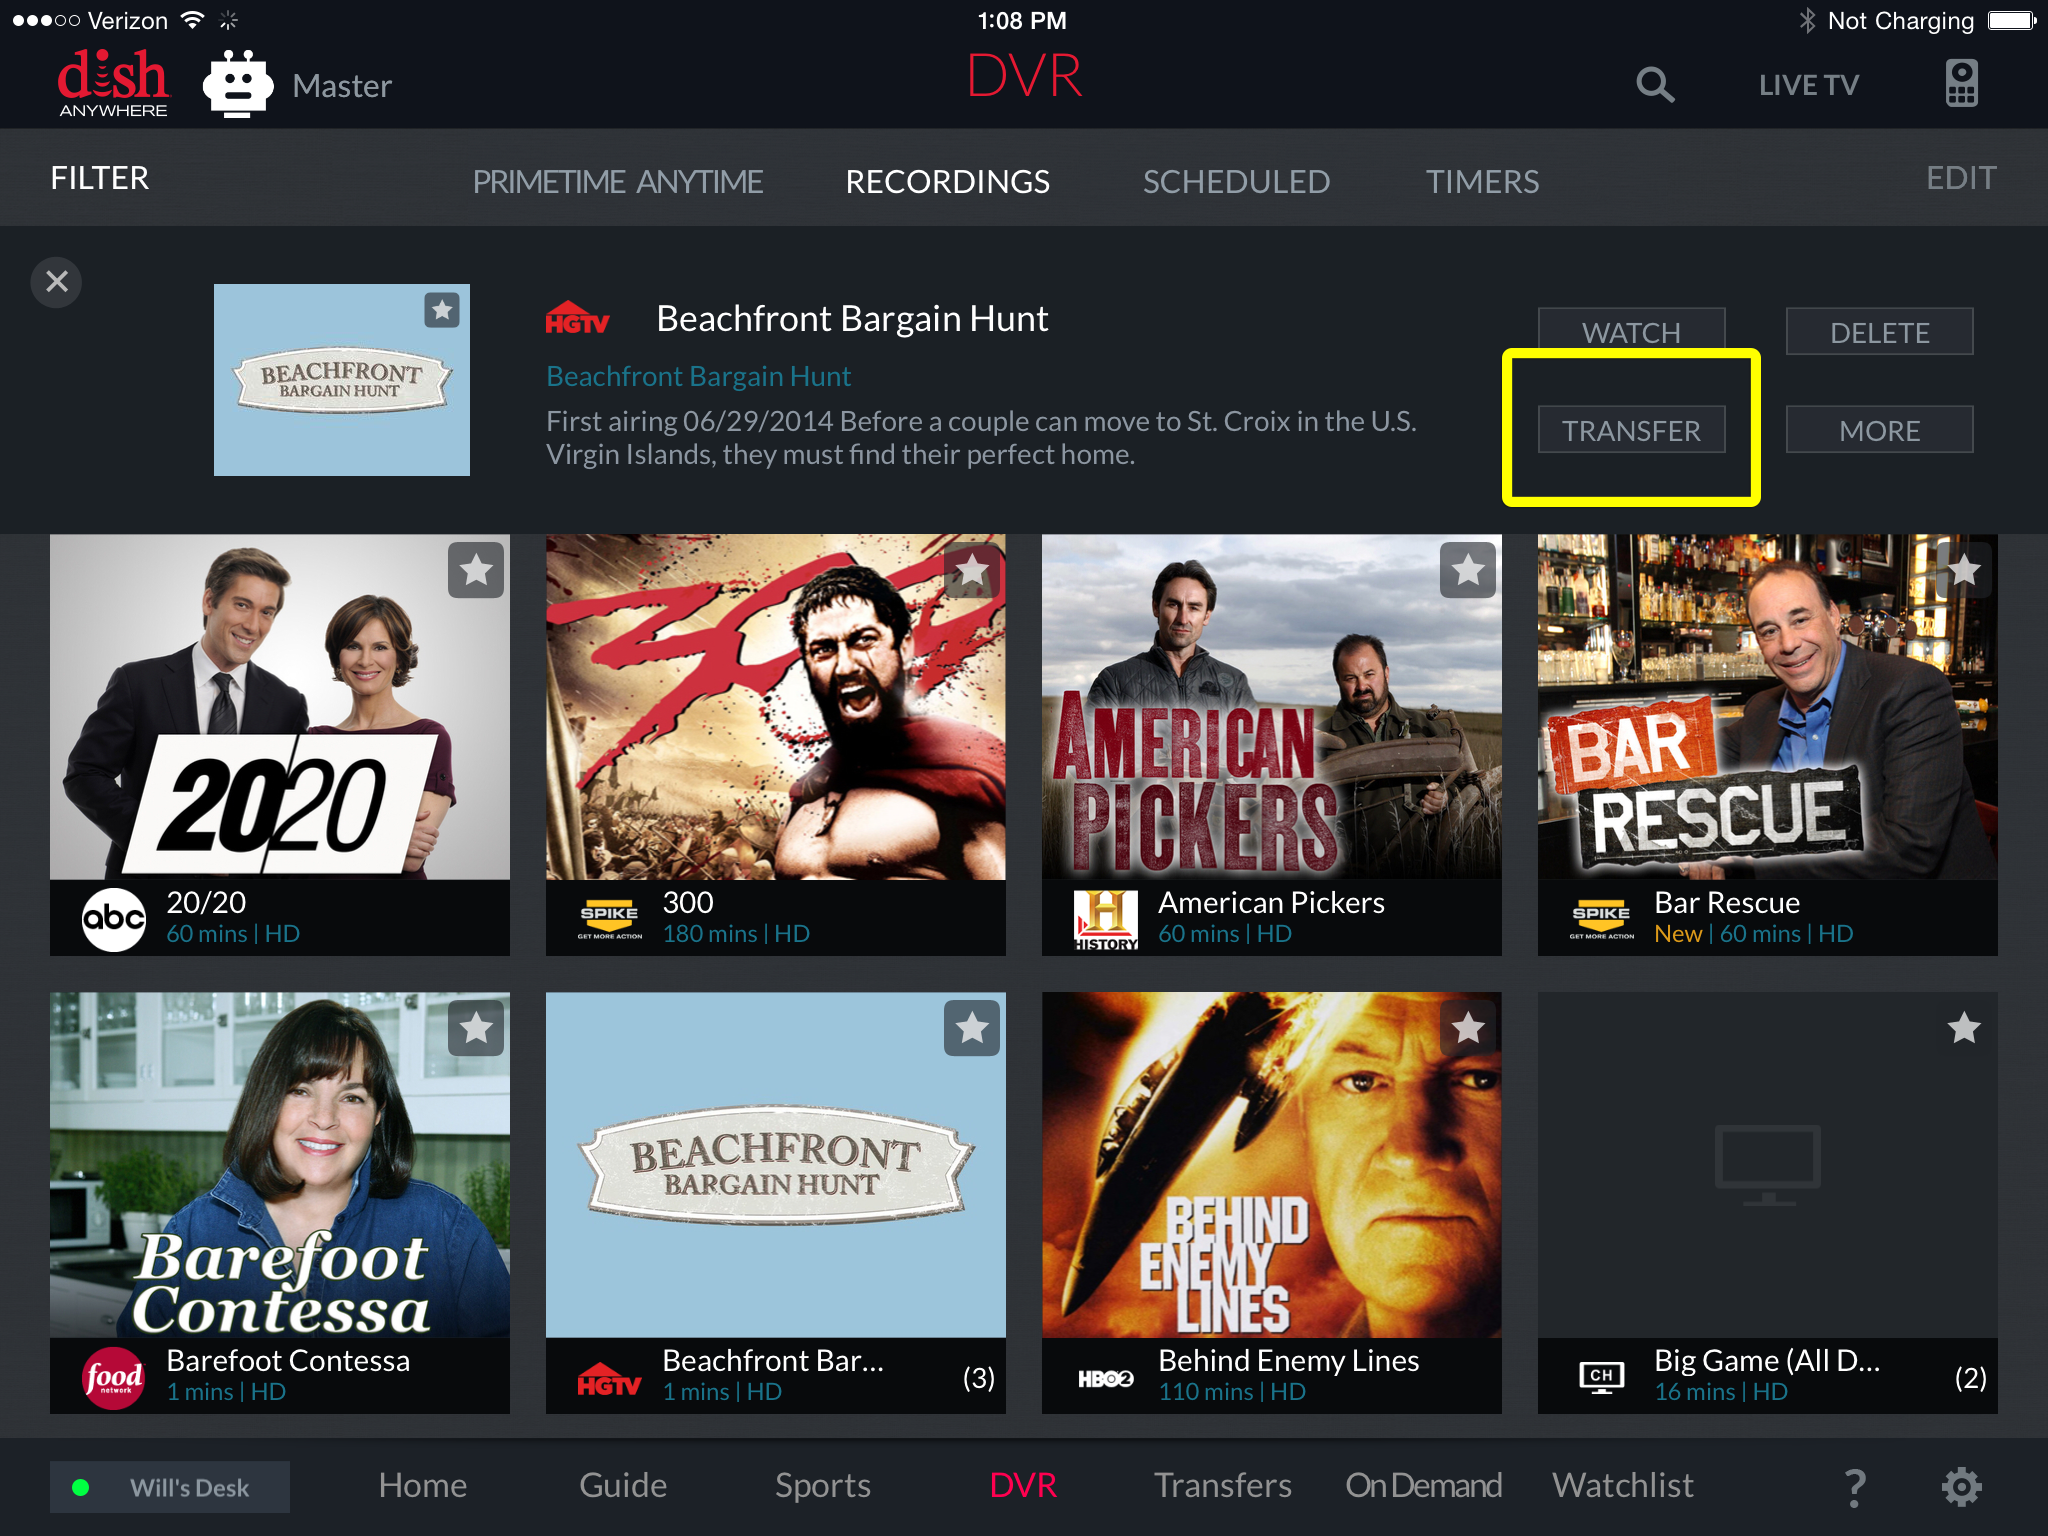 Transfer button for selected content on DISH Anywhere app